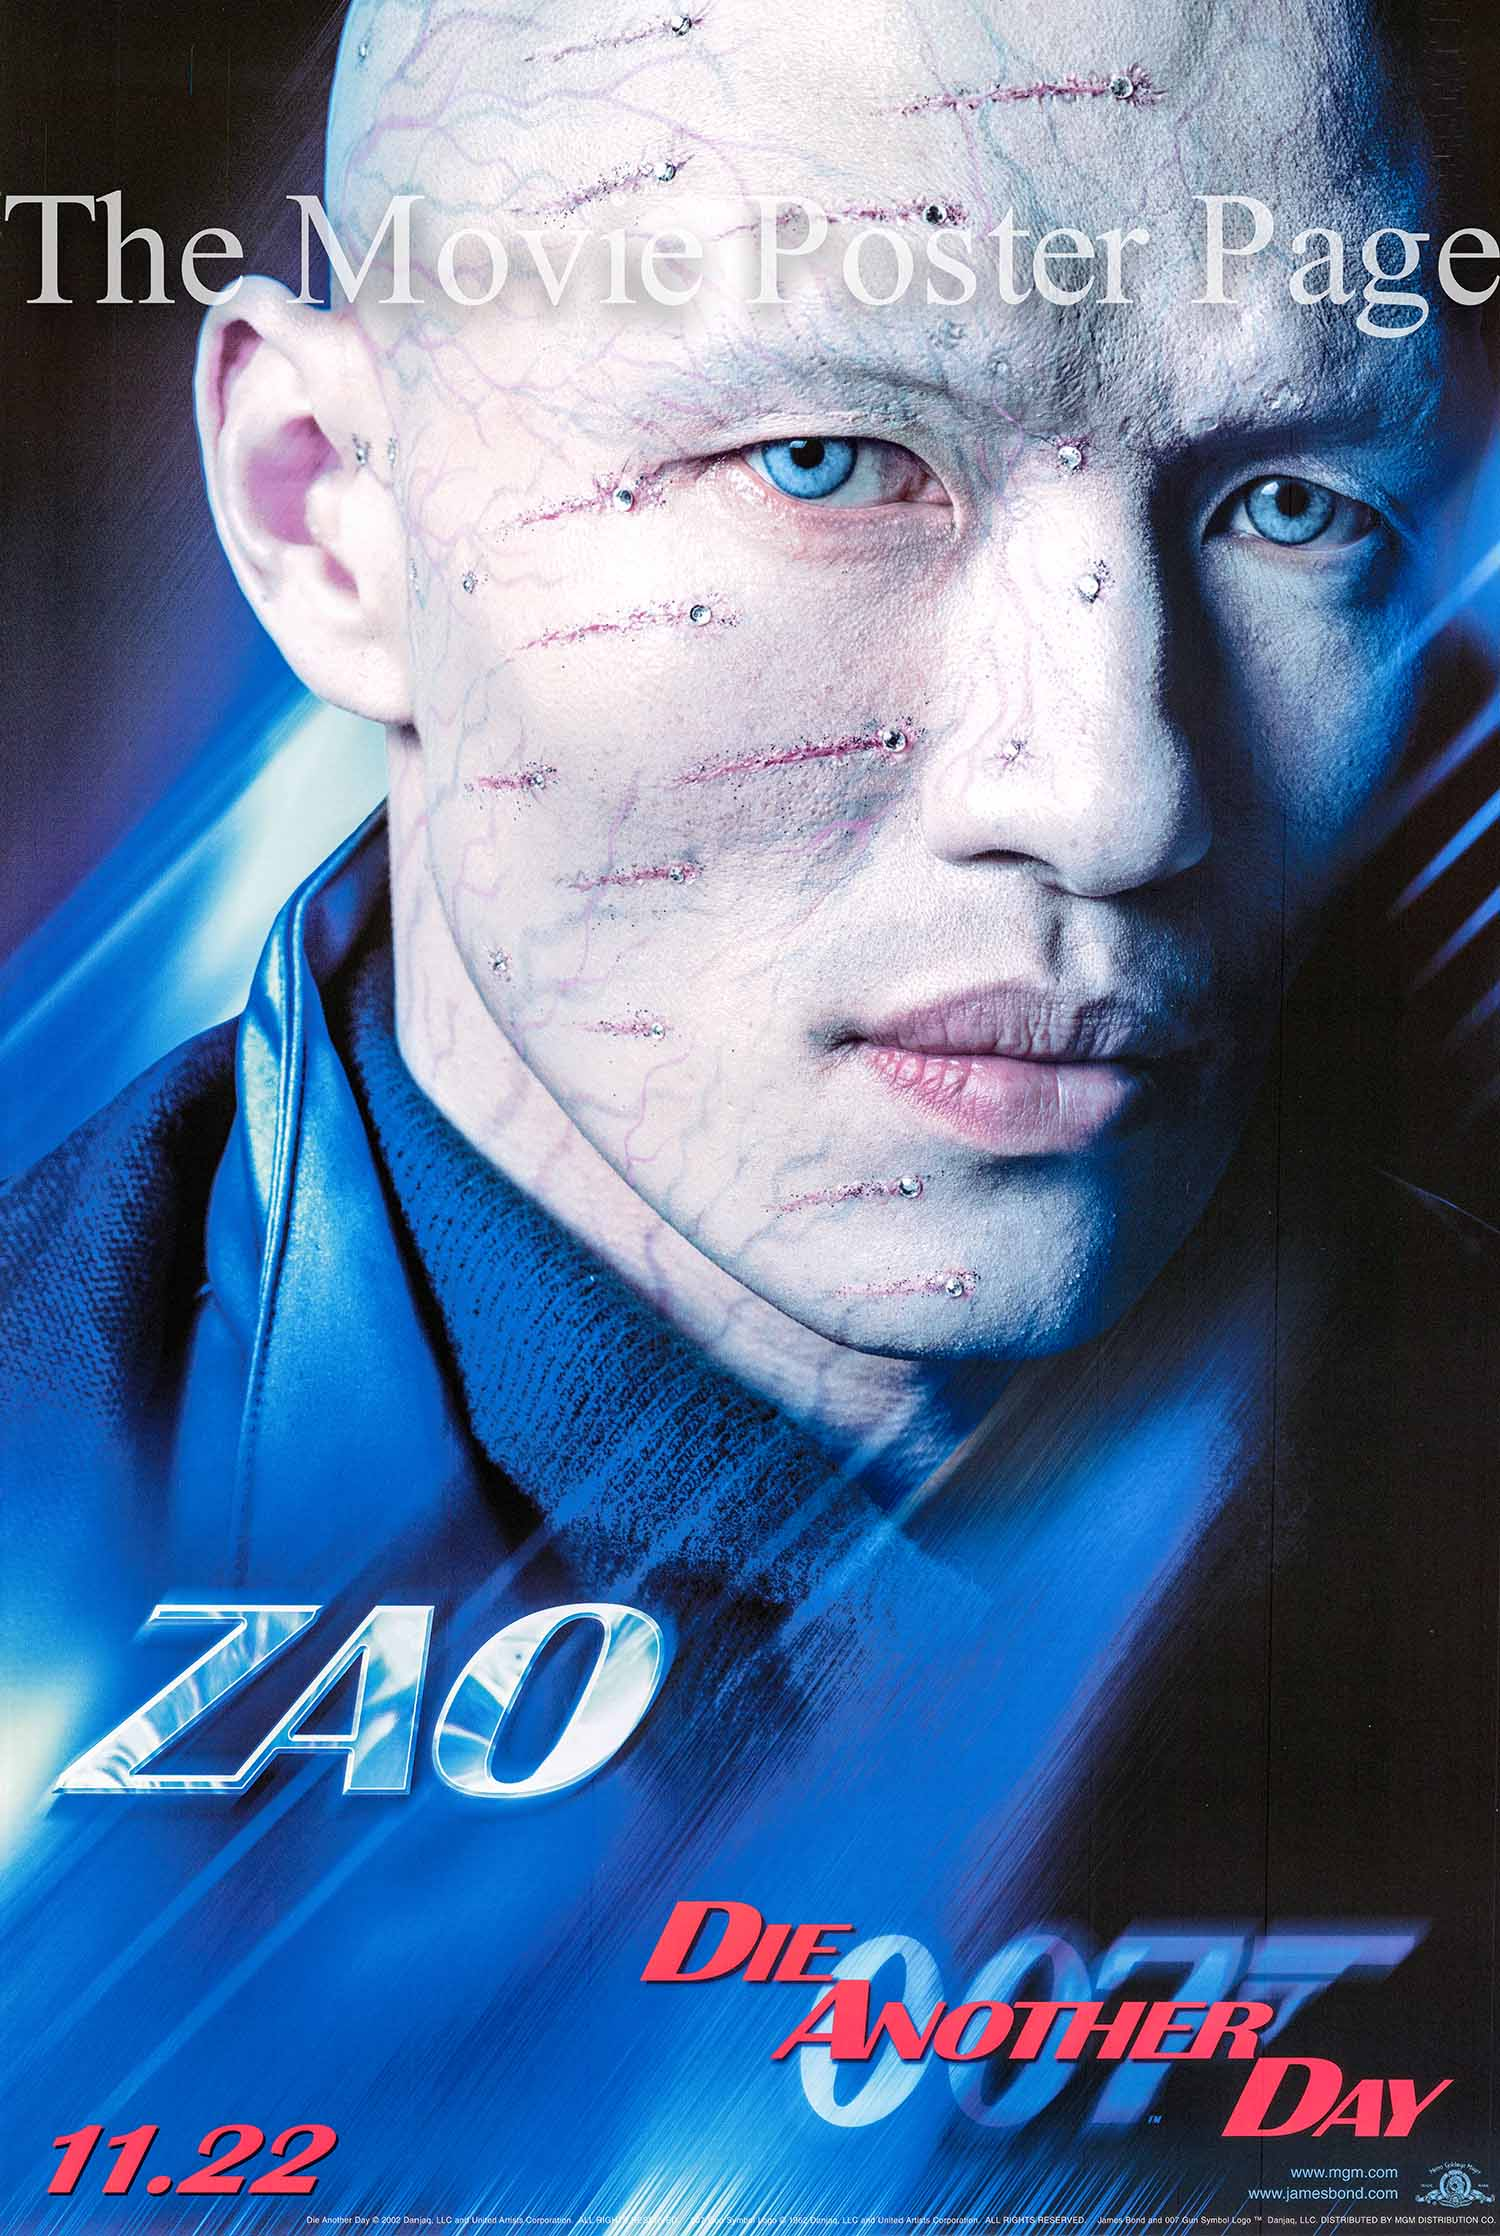 Pictured is a Zao character advance one-sheet poster made to promote the 2002 Lee Tamahori film Die another Day starring Pierce Brosnan as James Bond.